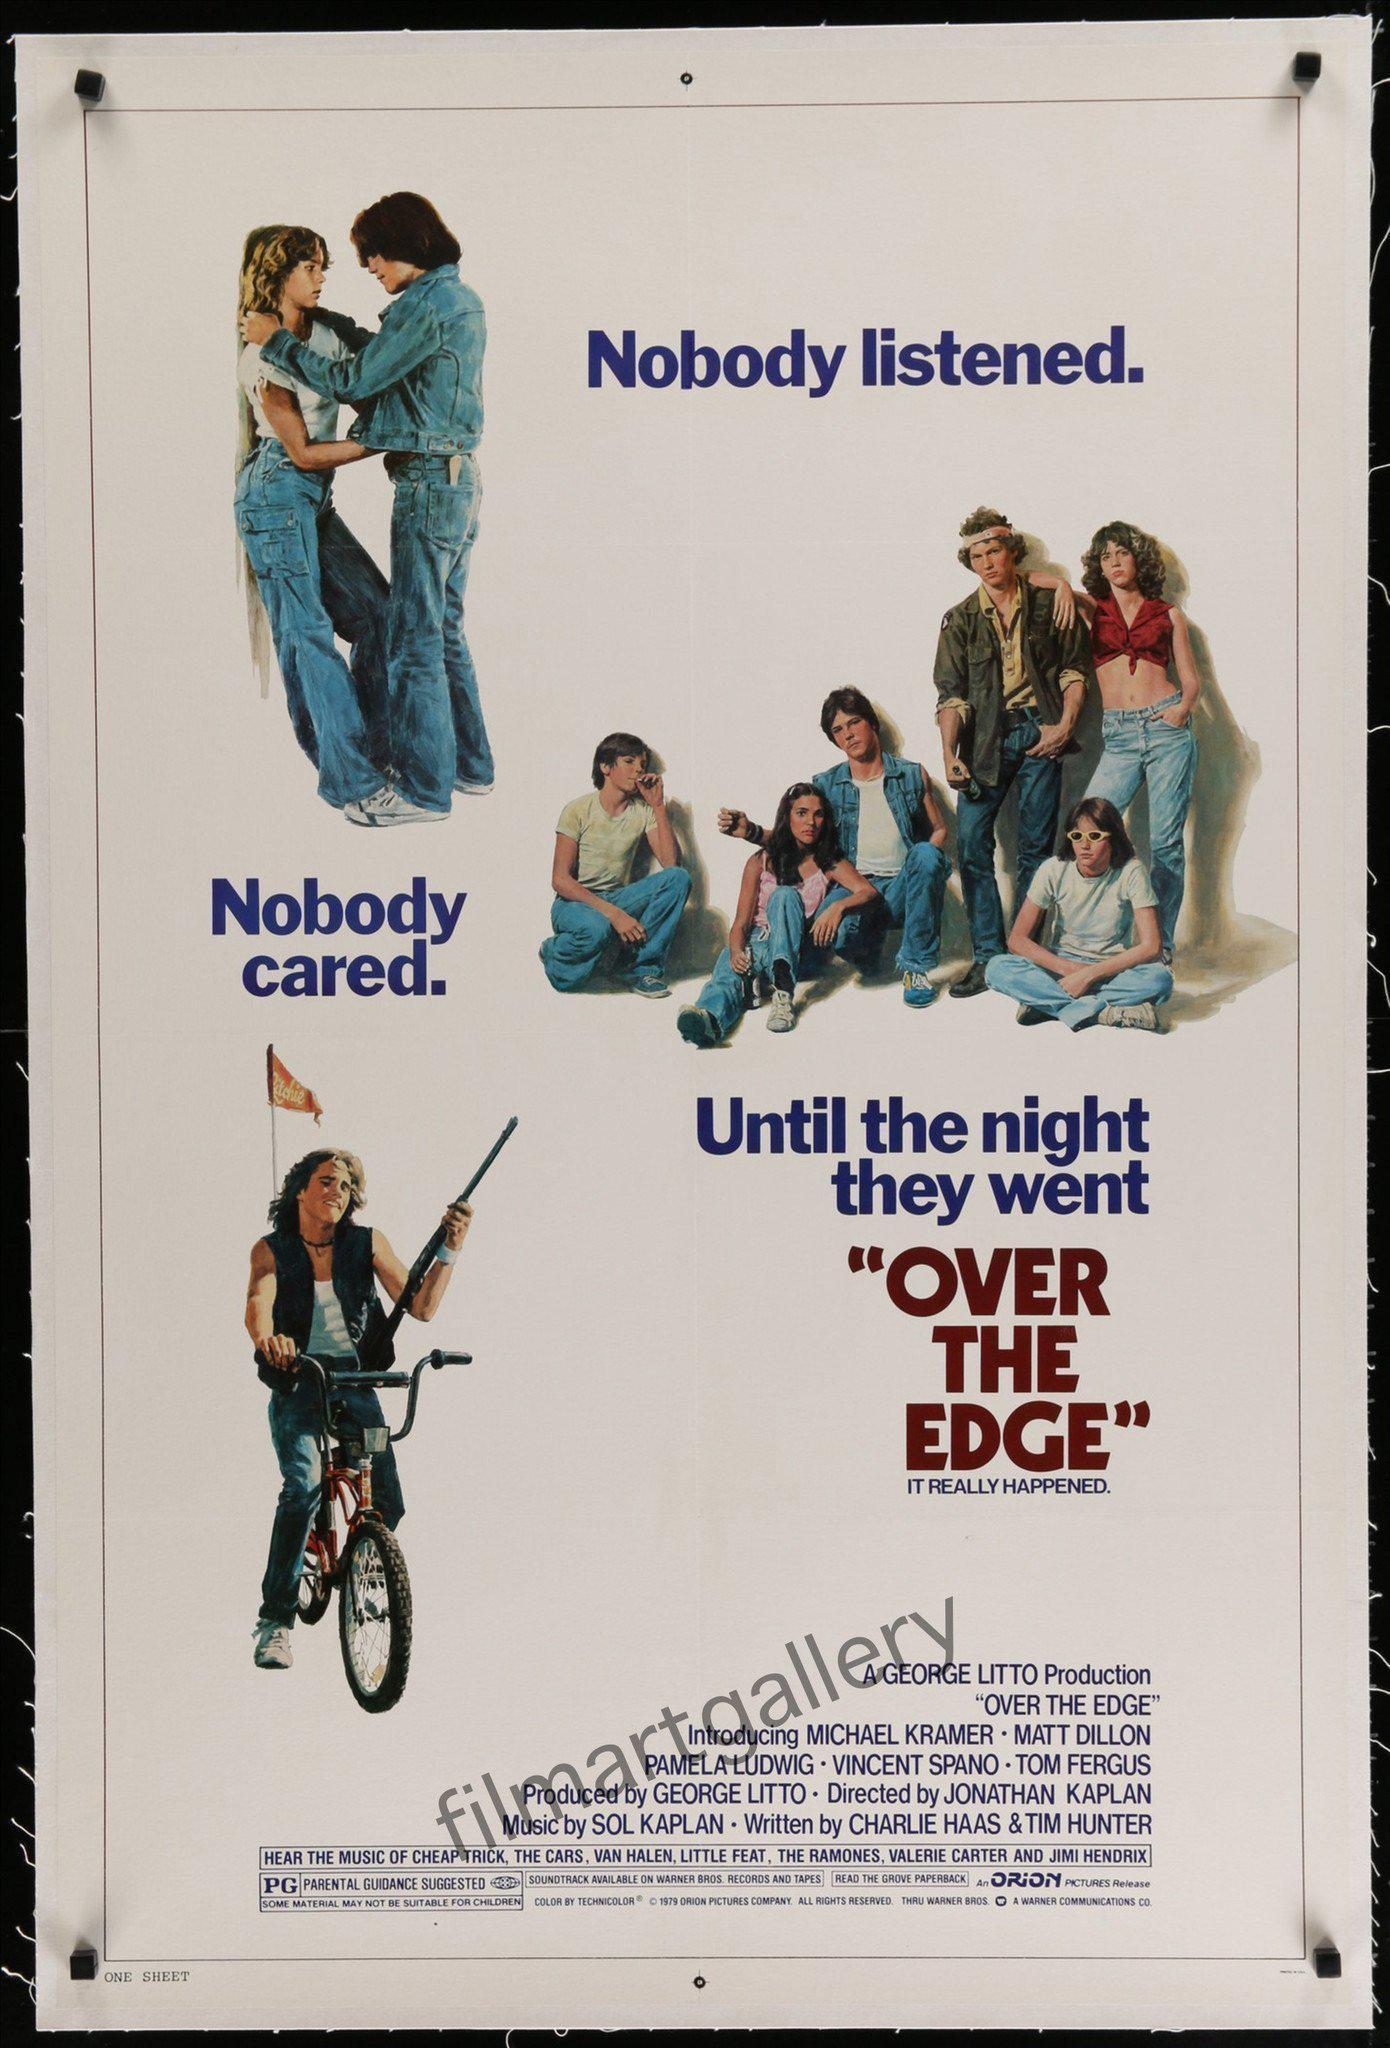 Over the Edge 1 Sheet (27x41) Original Vintage Movie Poster